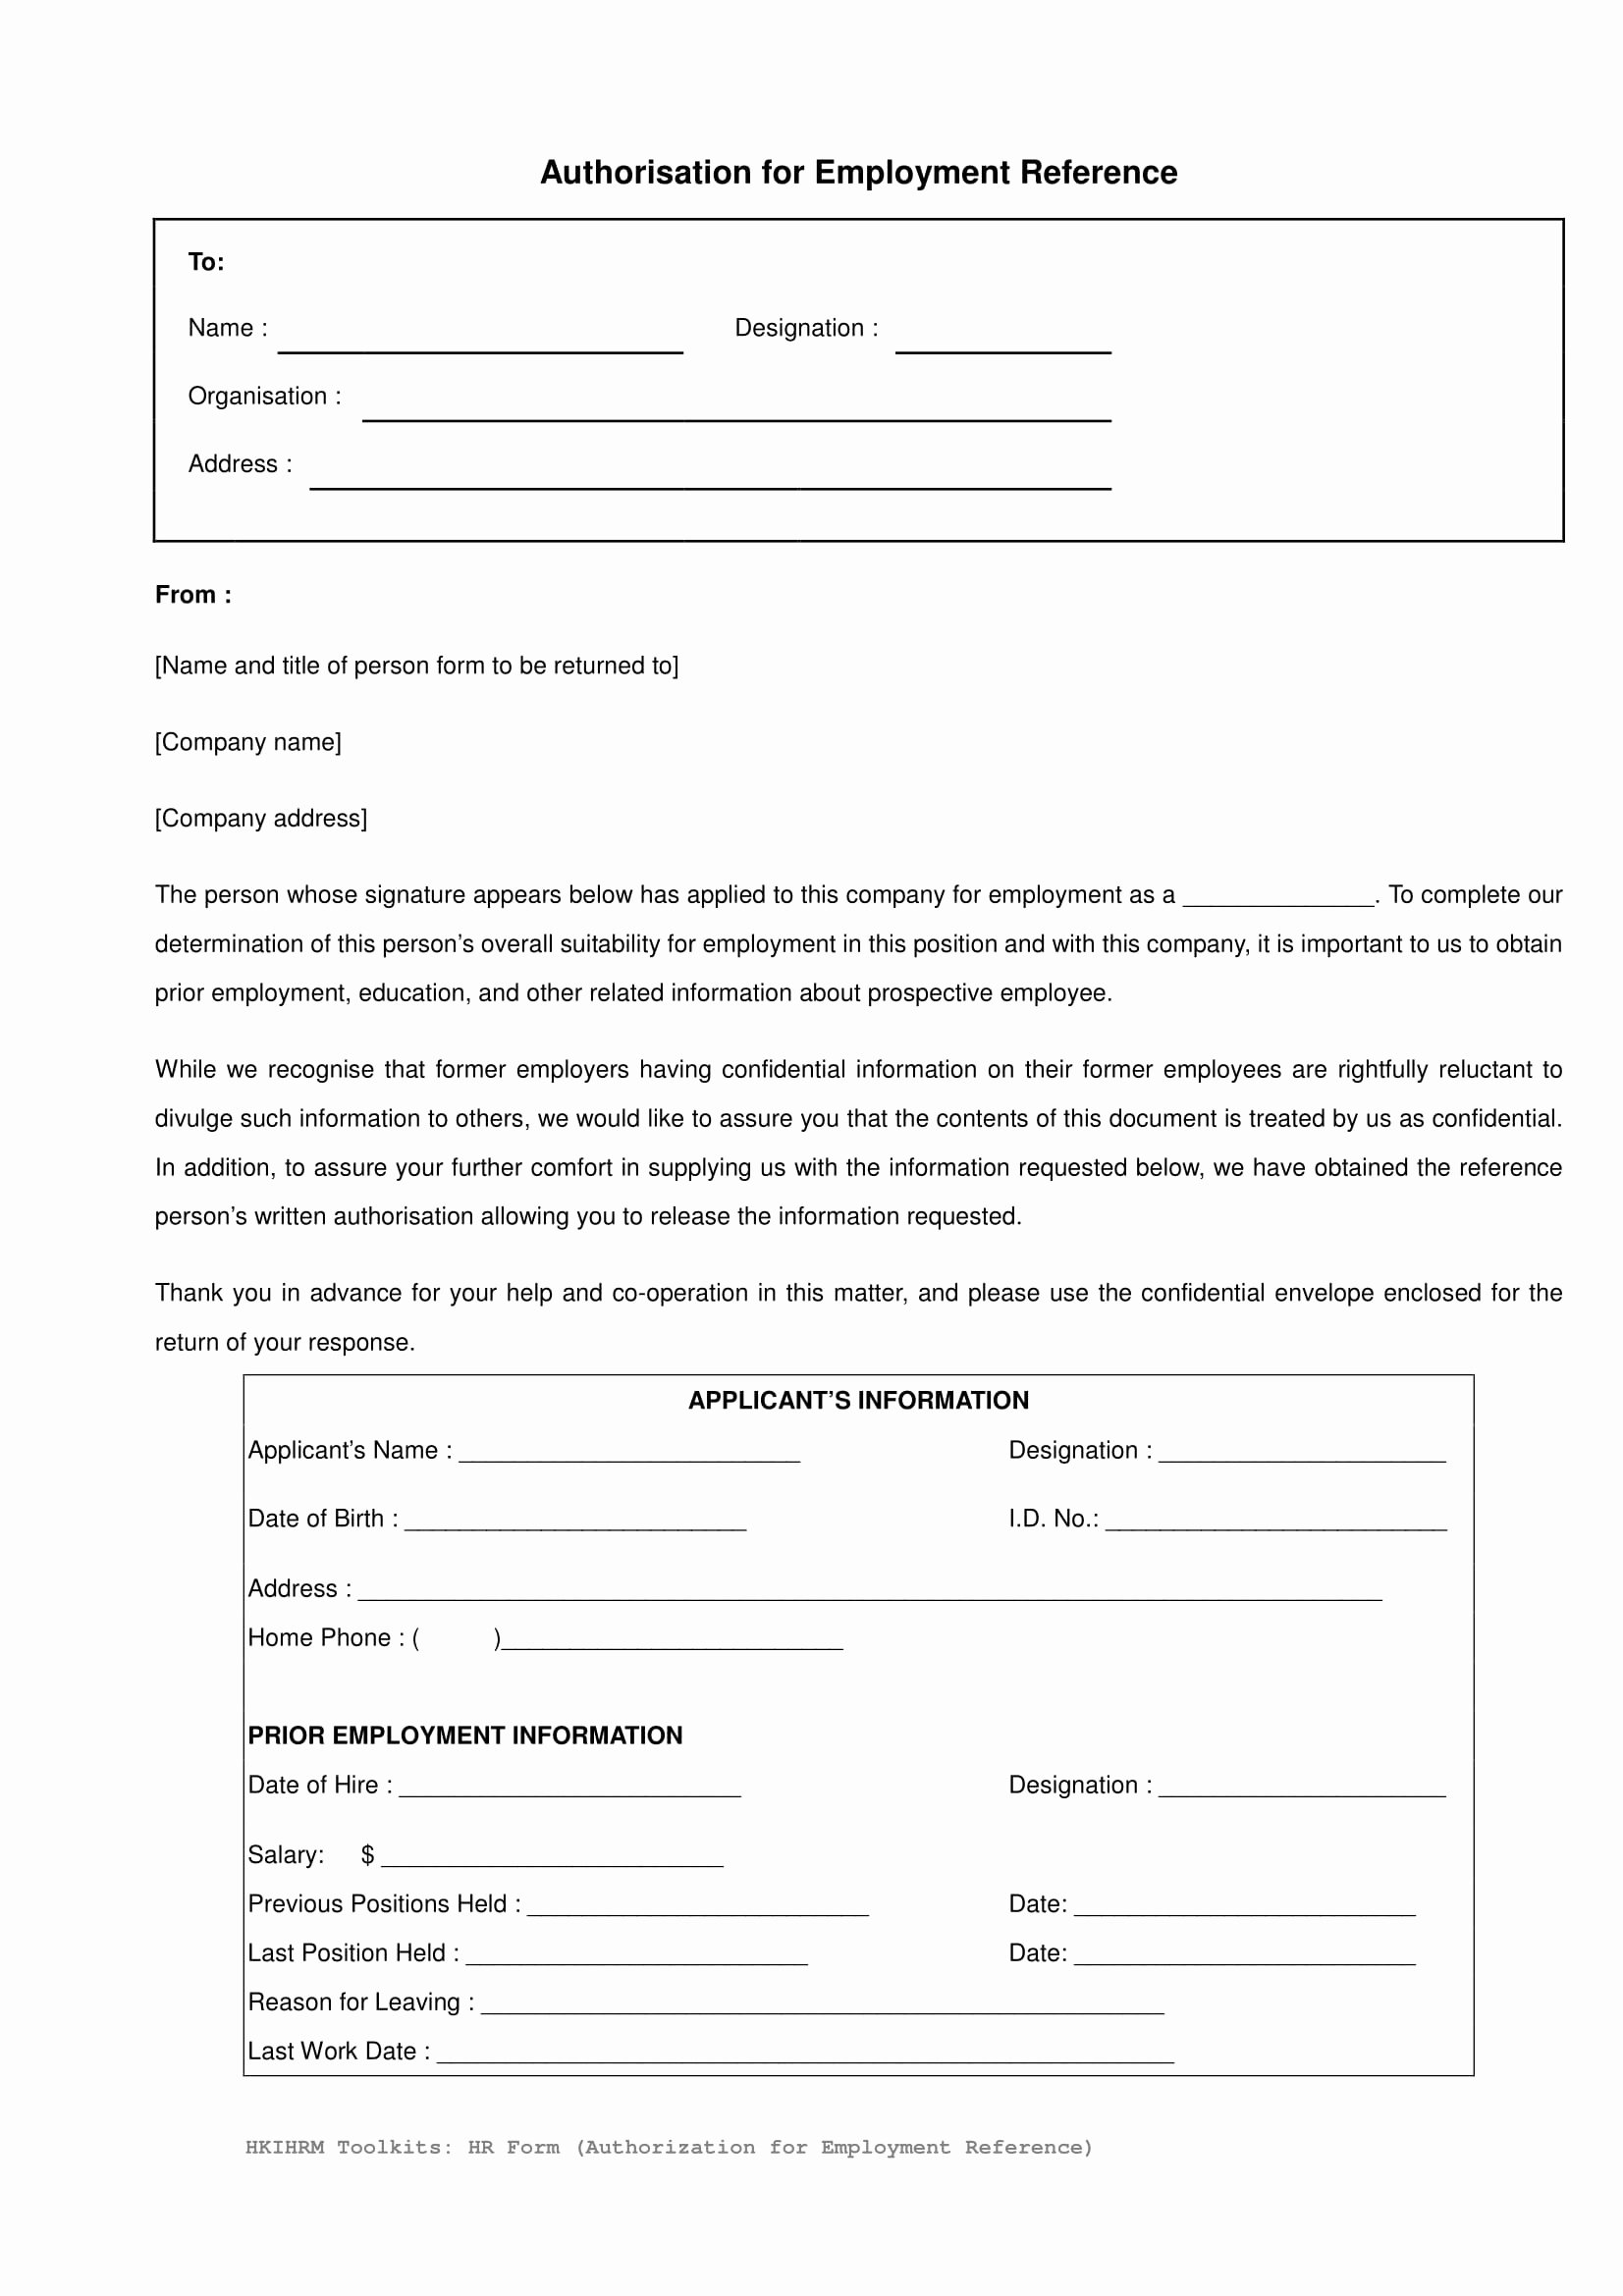 Employment Reference Request form Best Of 14 Reference Request and Release forms Free Word Pdf